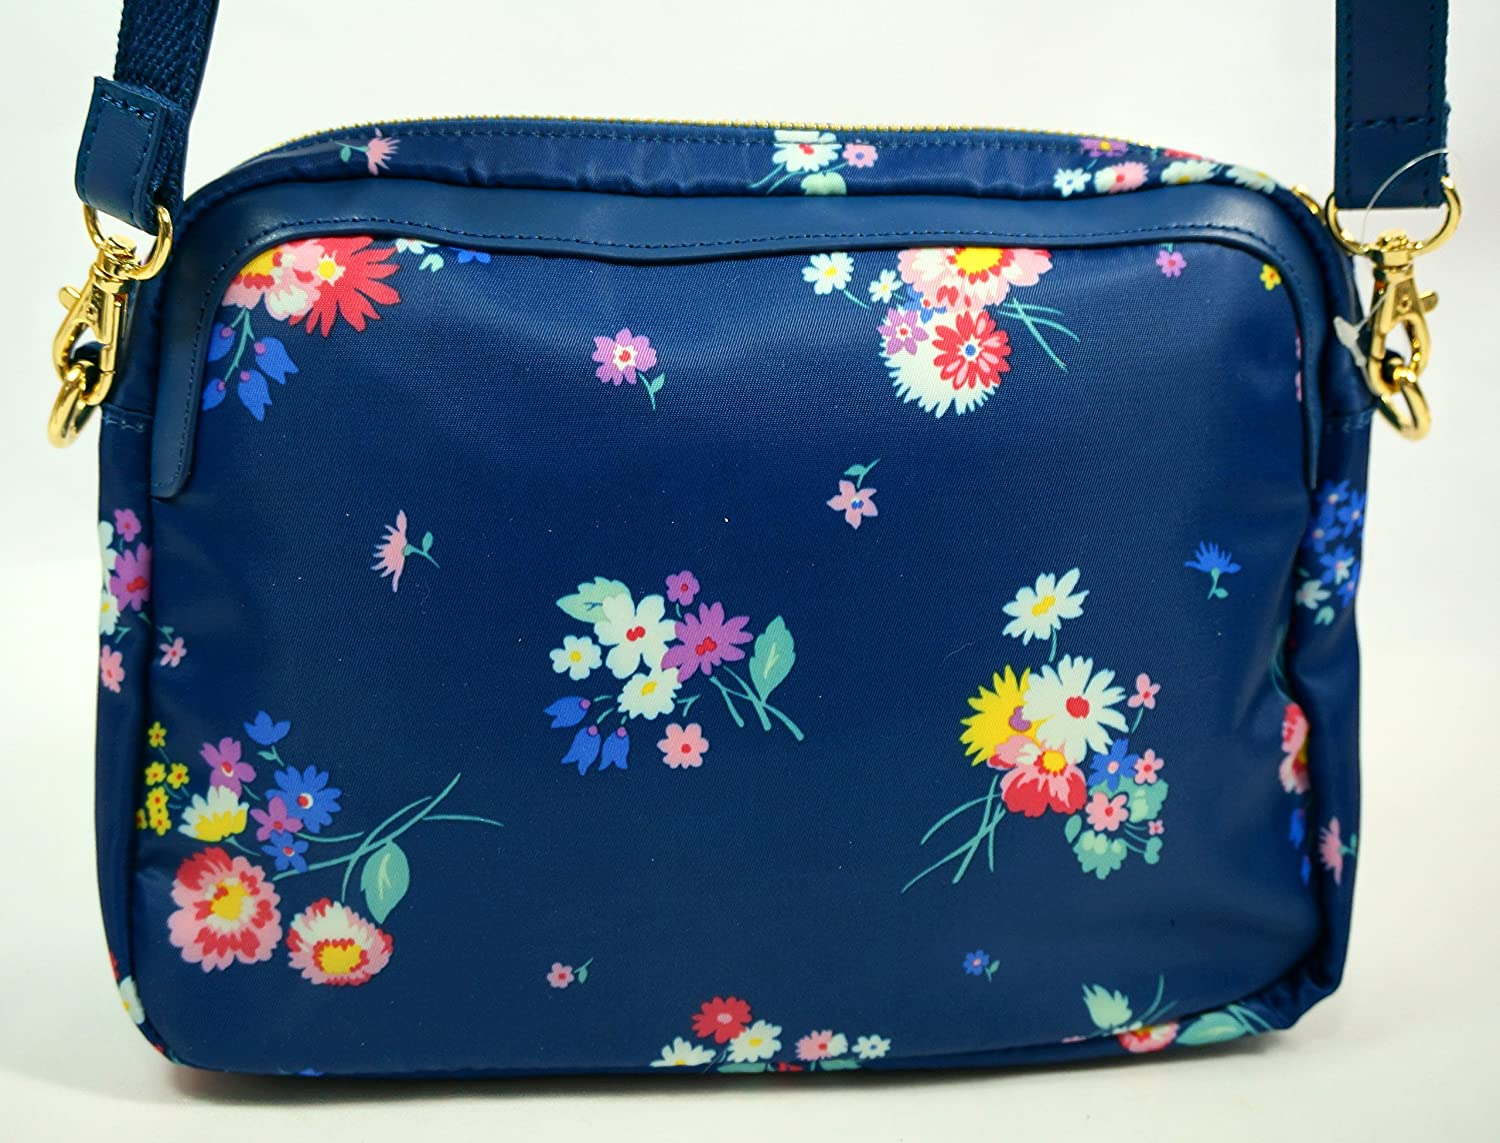 63097f42ca Cath Kidston Mini Shoulder Bag Busby Bunch Floral Navy  Amazon.co.uk  Shoes    Bags